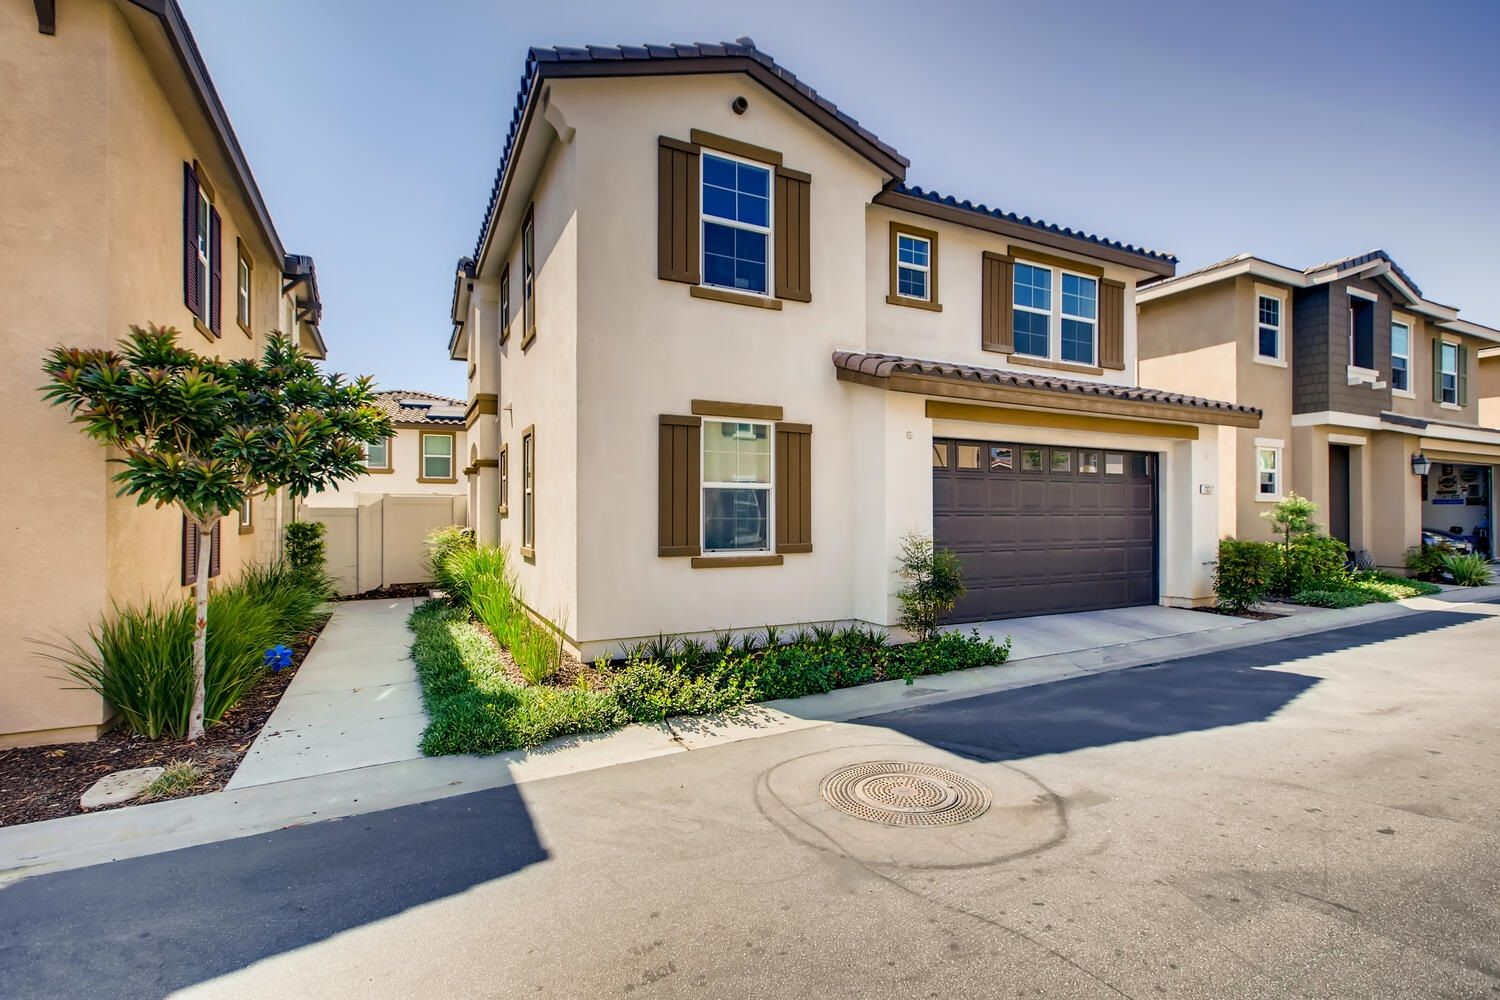 Main Photo: LAKESIDE House for sale : 4 bedrooms : 13317 Cuyamaca Vista Dr